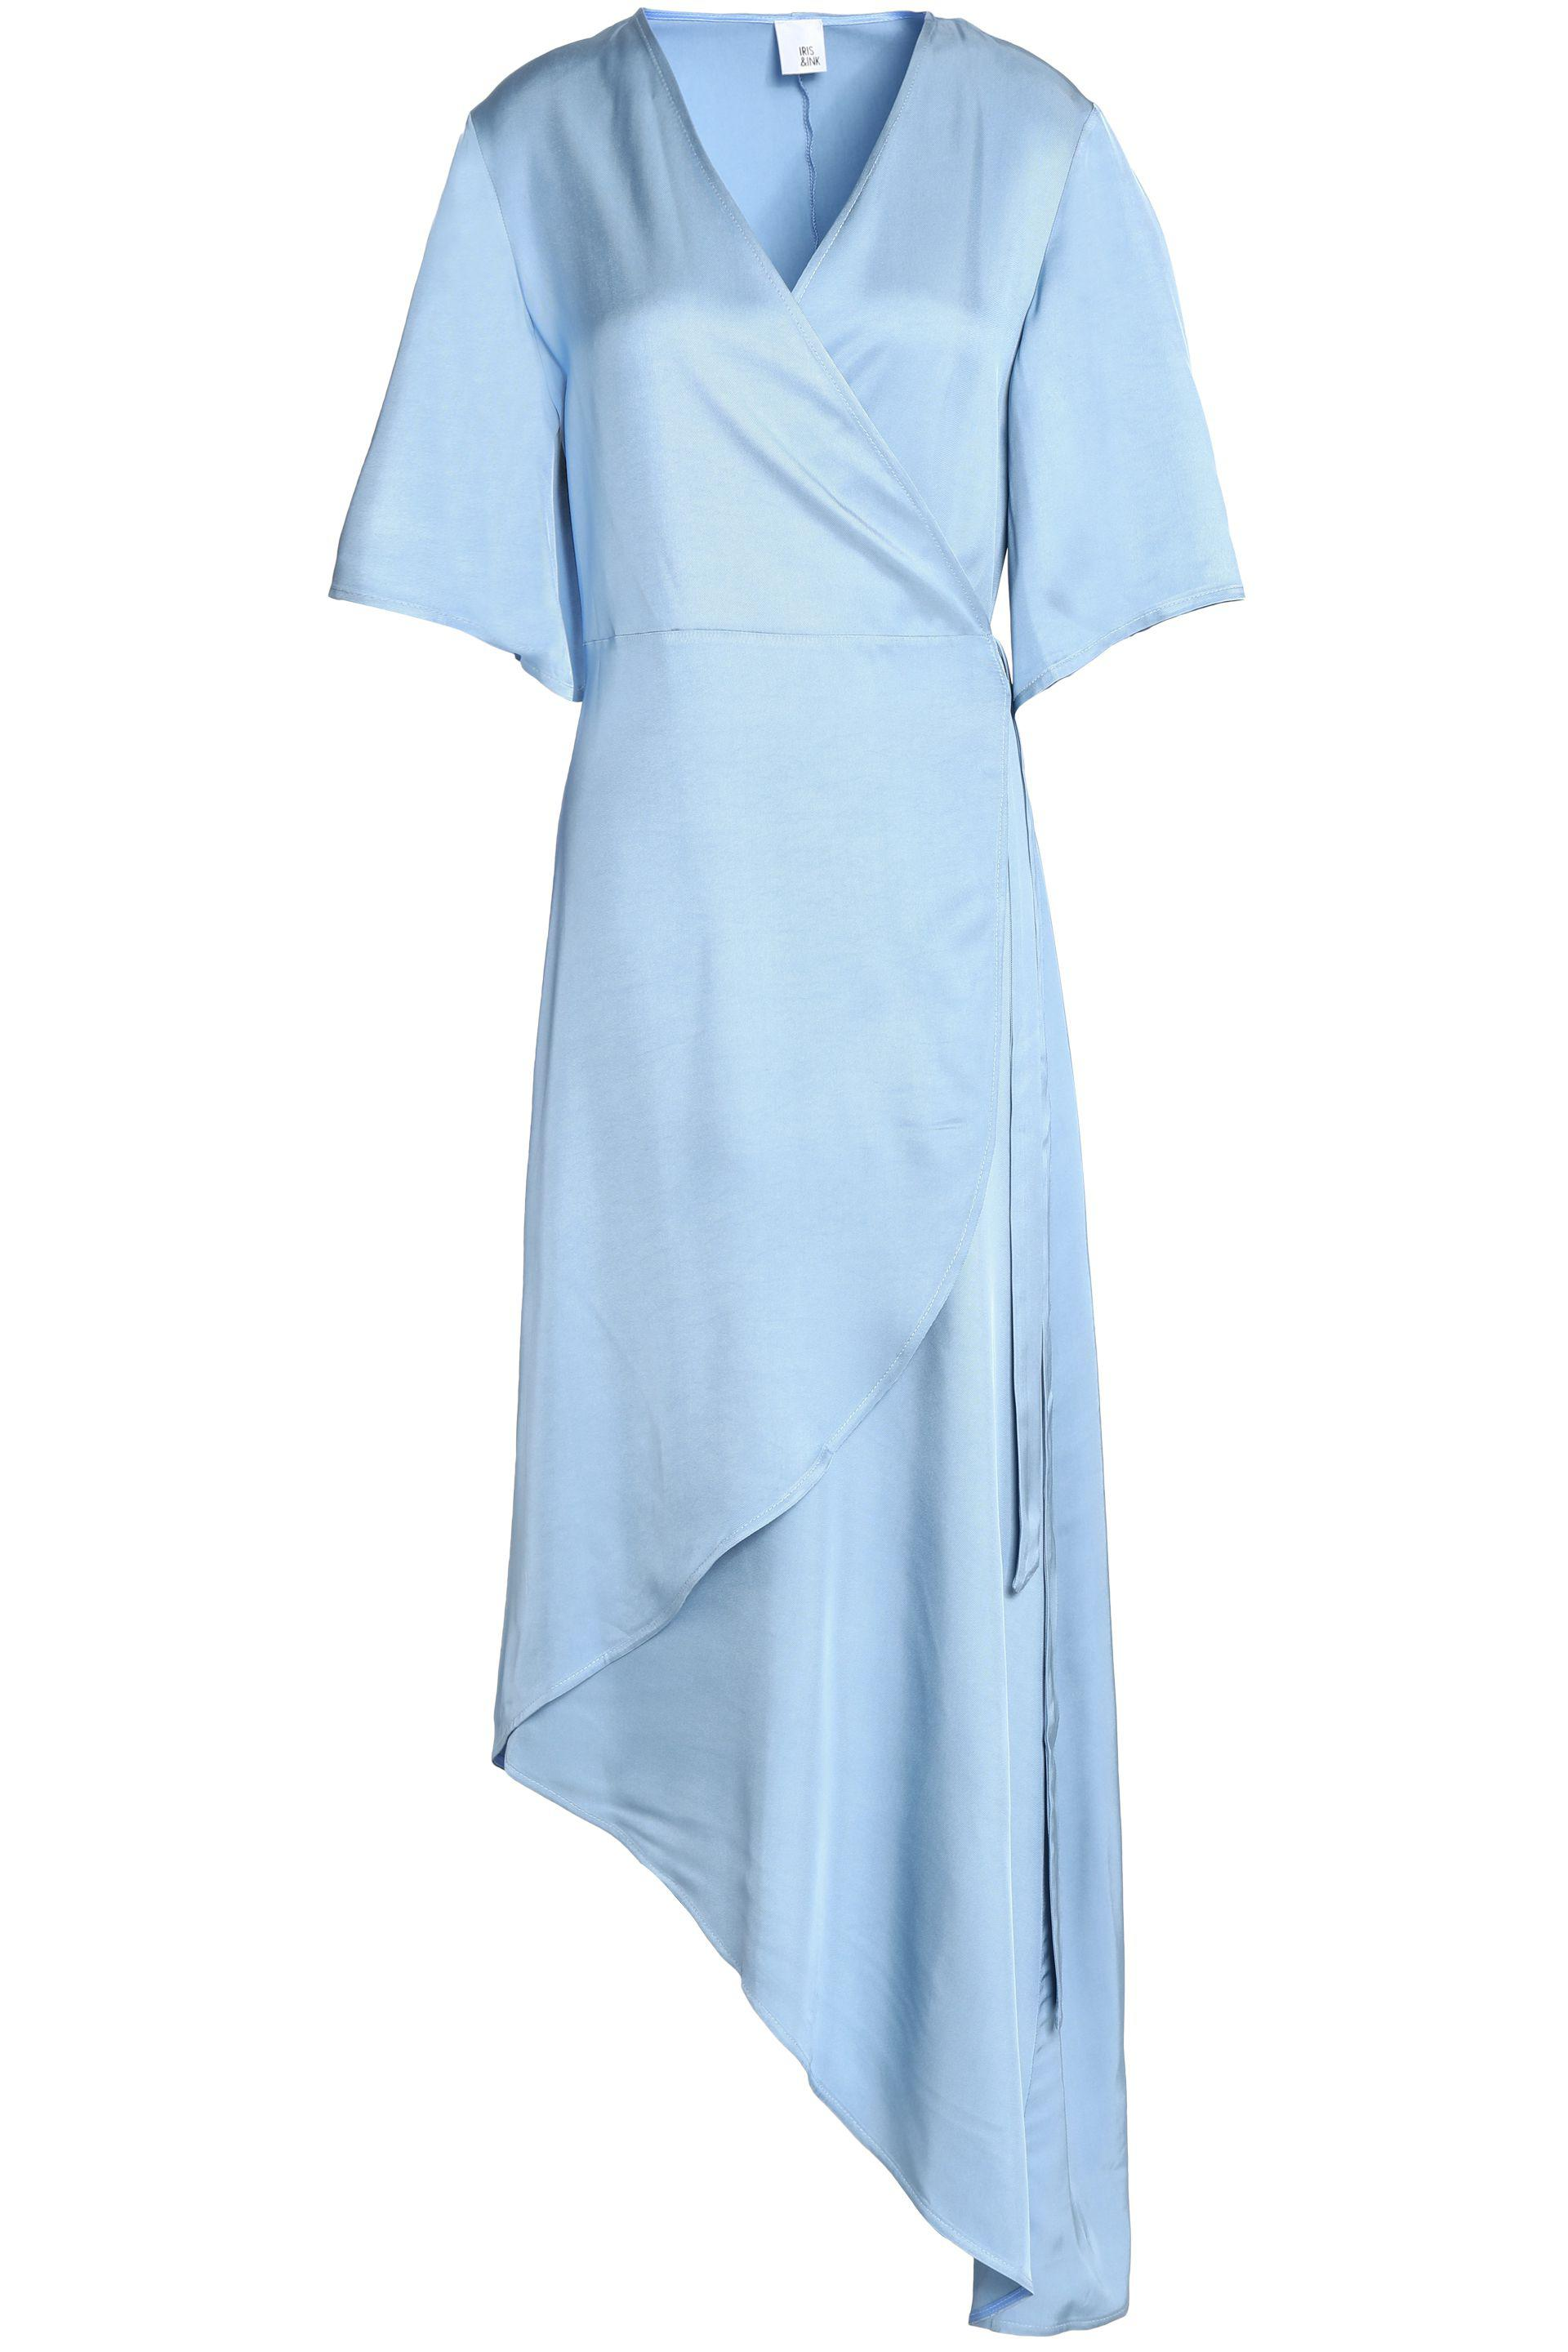 Iris & Ink Woman Noel Asymmetric Satin-twill Midi Wrap Dress Light Blue Size 4 IRIS & INK Cheap Real Authentic Looking For Cheap Online Cost Outlet Countdown Package 7D2Dfmu